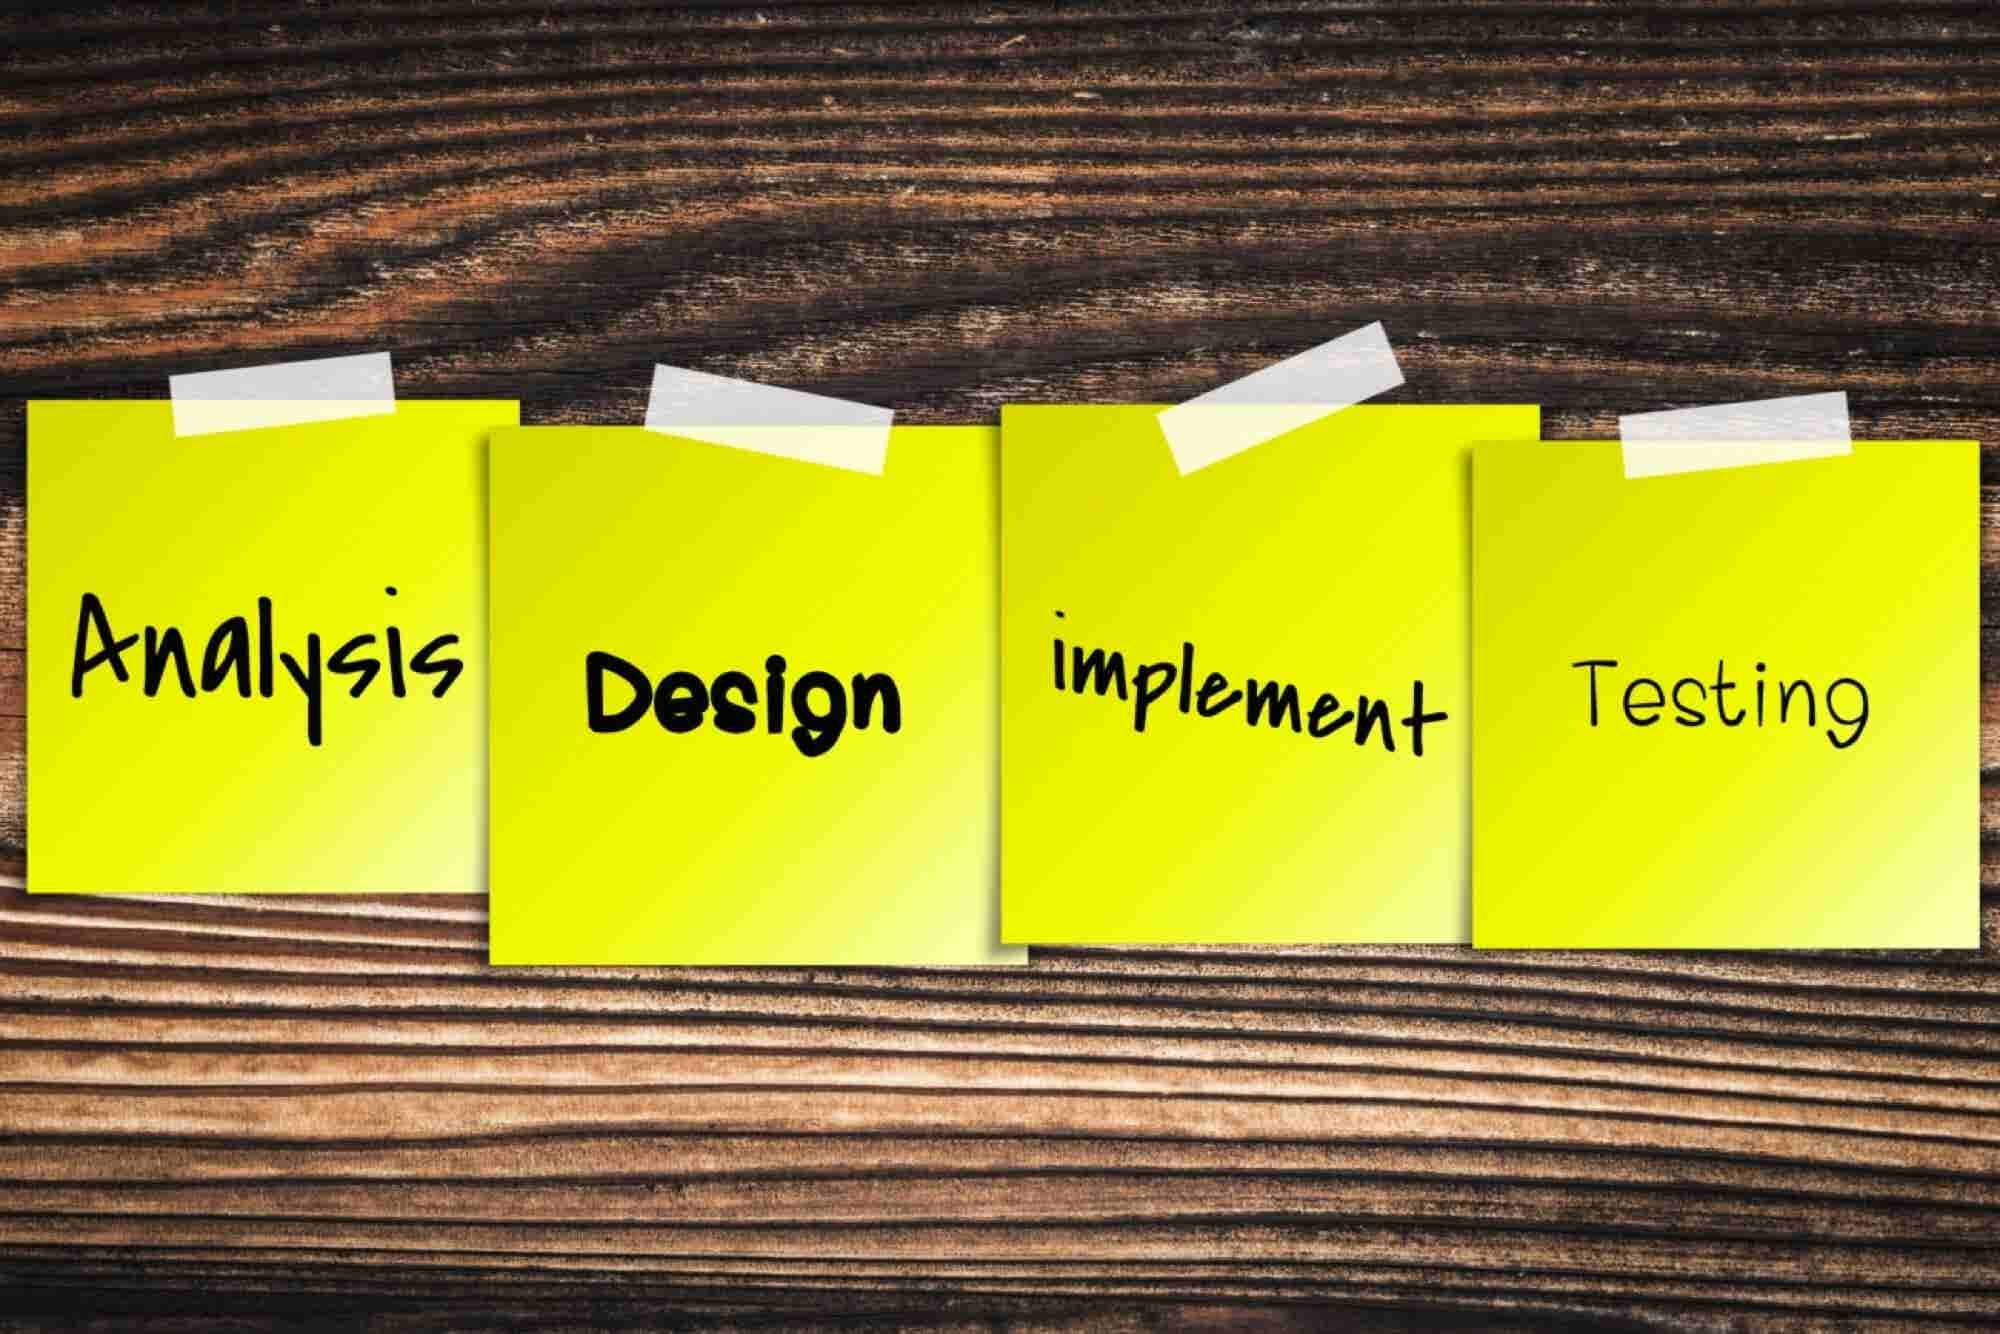 5 Questions to Ask Before Hiring a Software Development Team